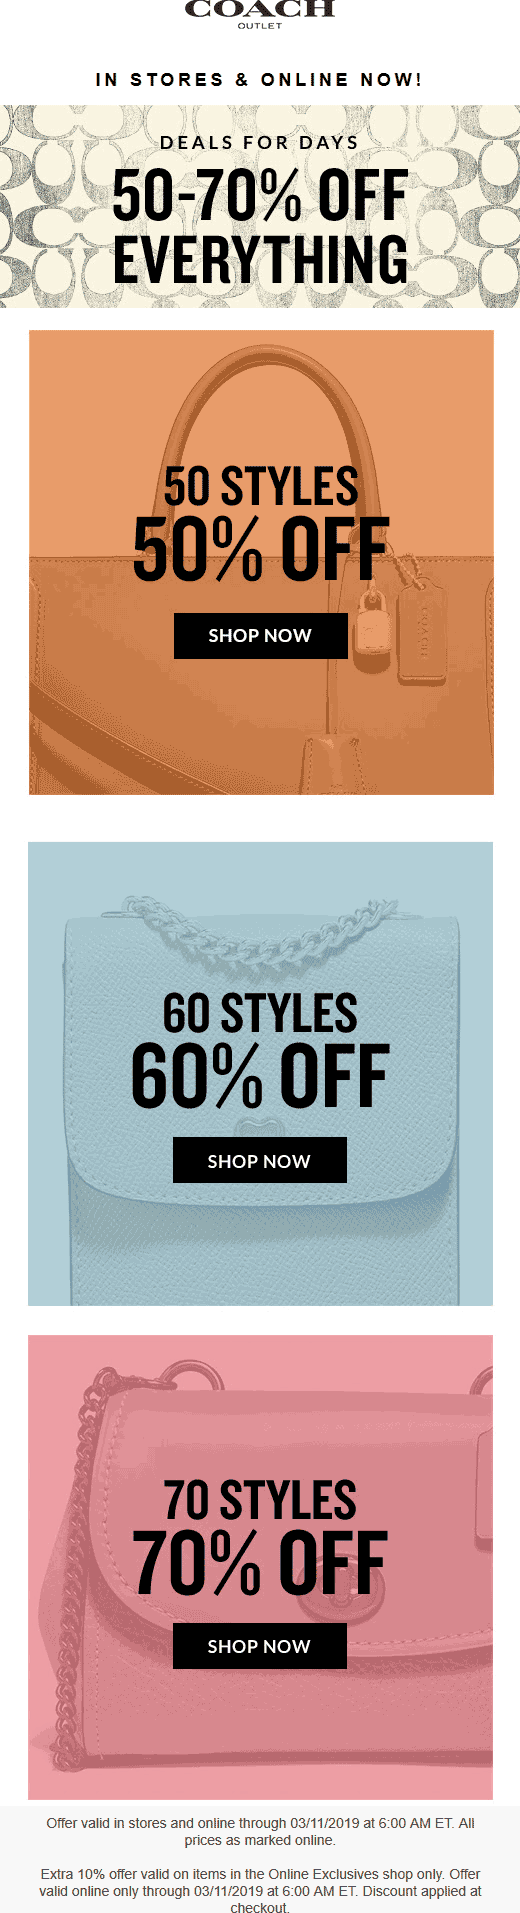 Coach Outlet coupons & promo code for [August 2020]